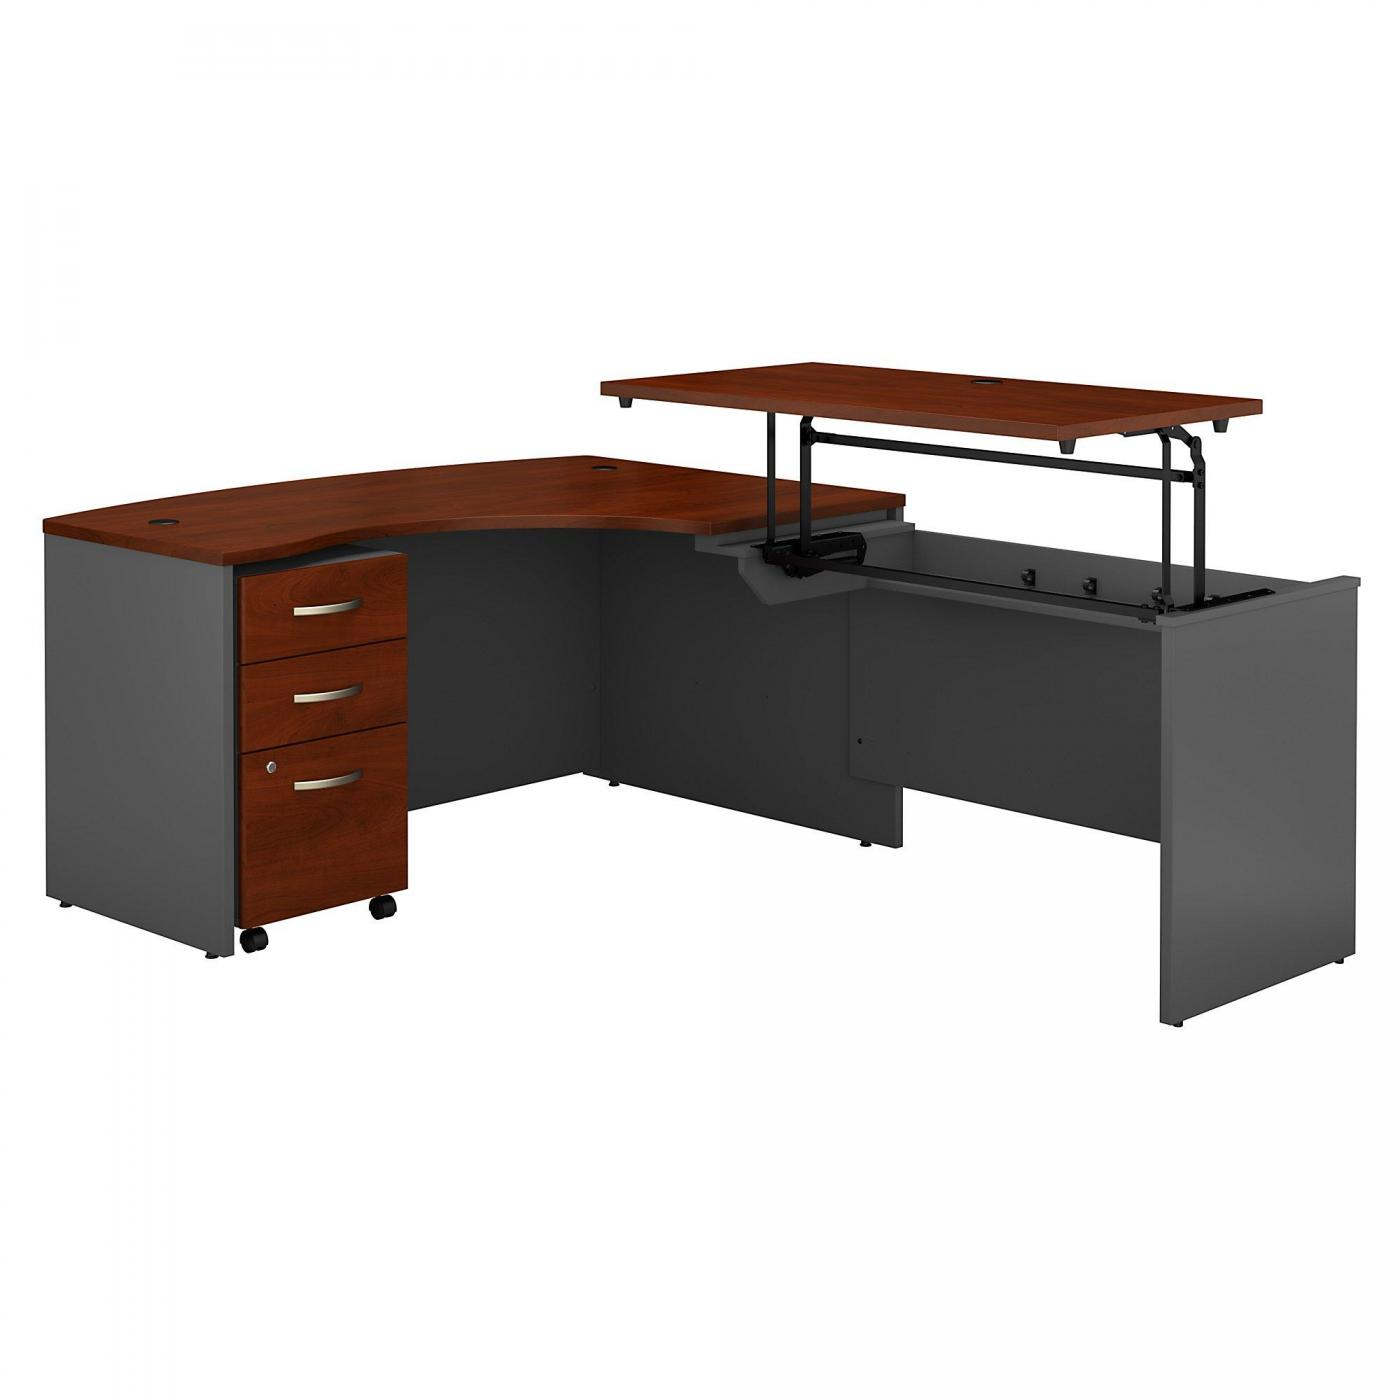 <font color=#c60><b>BUSH BUSINESS FURNITURE SERIES C 60W X 43D LEFT HAND 3 POSITION SIT TO STAND L SHAPED DESK WITH MOBILE FILE CABINET. FREE SHIPPING. VIDEO:</font></b></font></b>